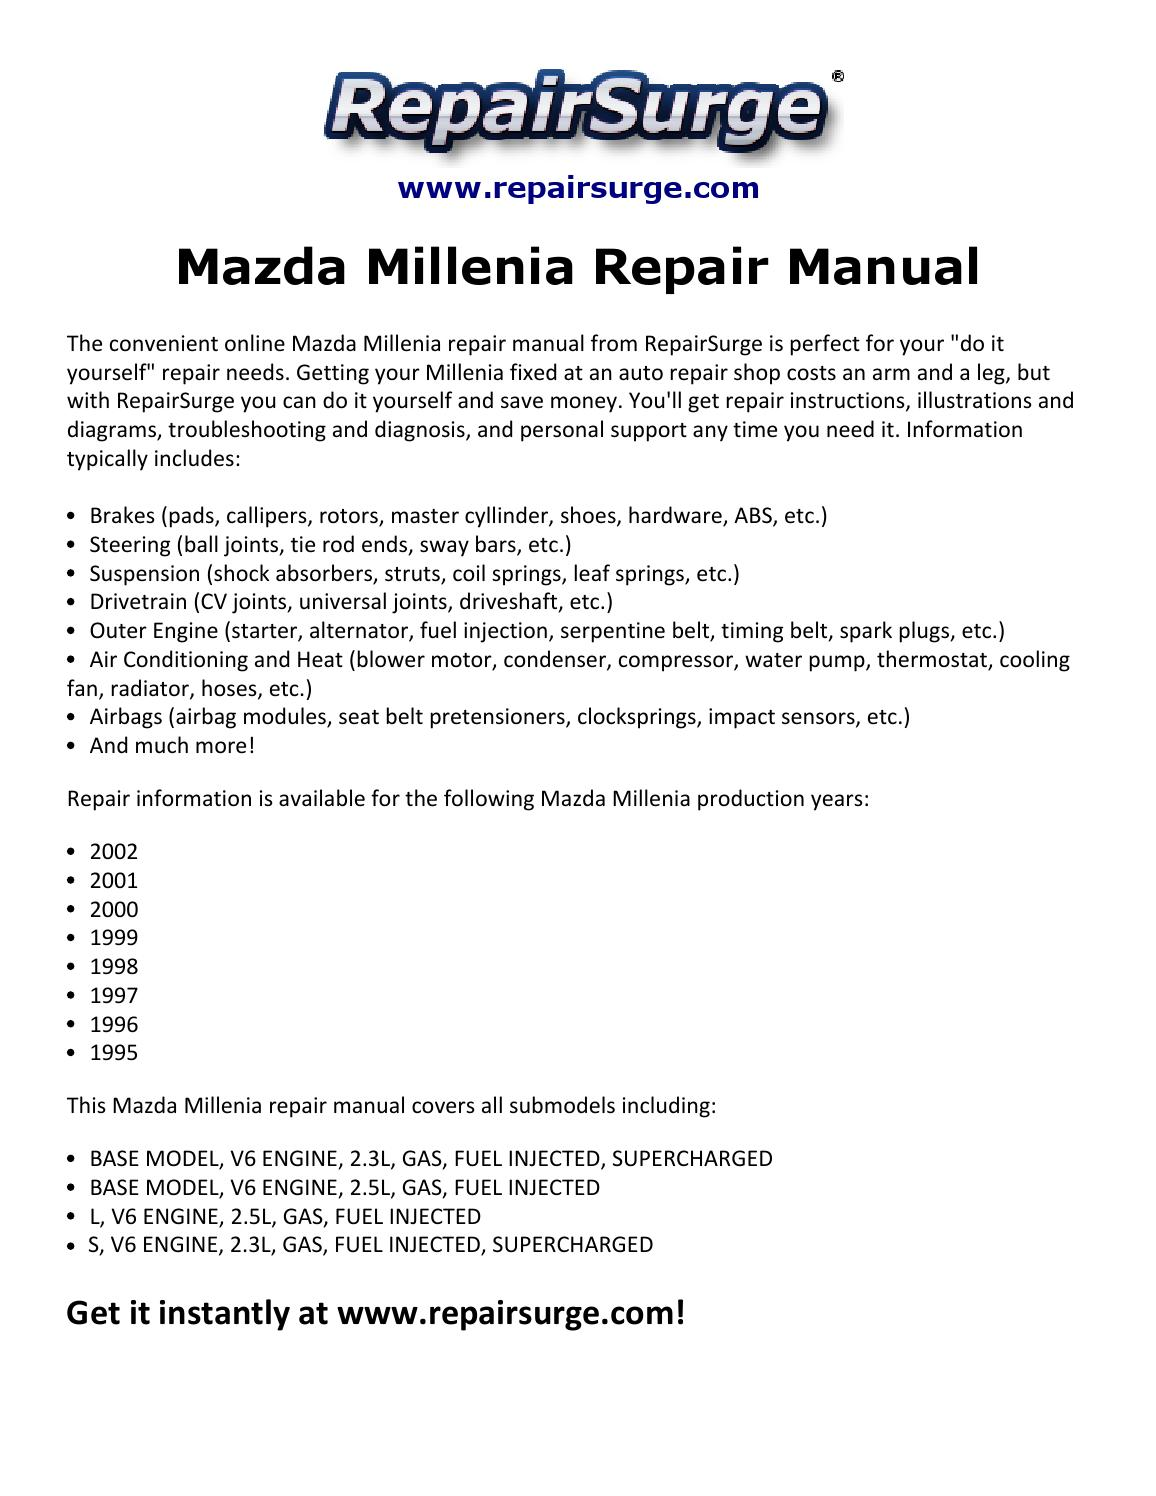 2000 Mazda Millenia Repair Manual One Word Quickstart Guide Book Fuse Box Cover 1995 2002 By Smith Collin Issuu Rh Com